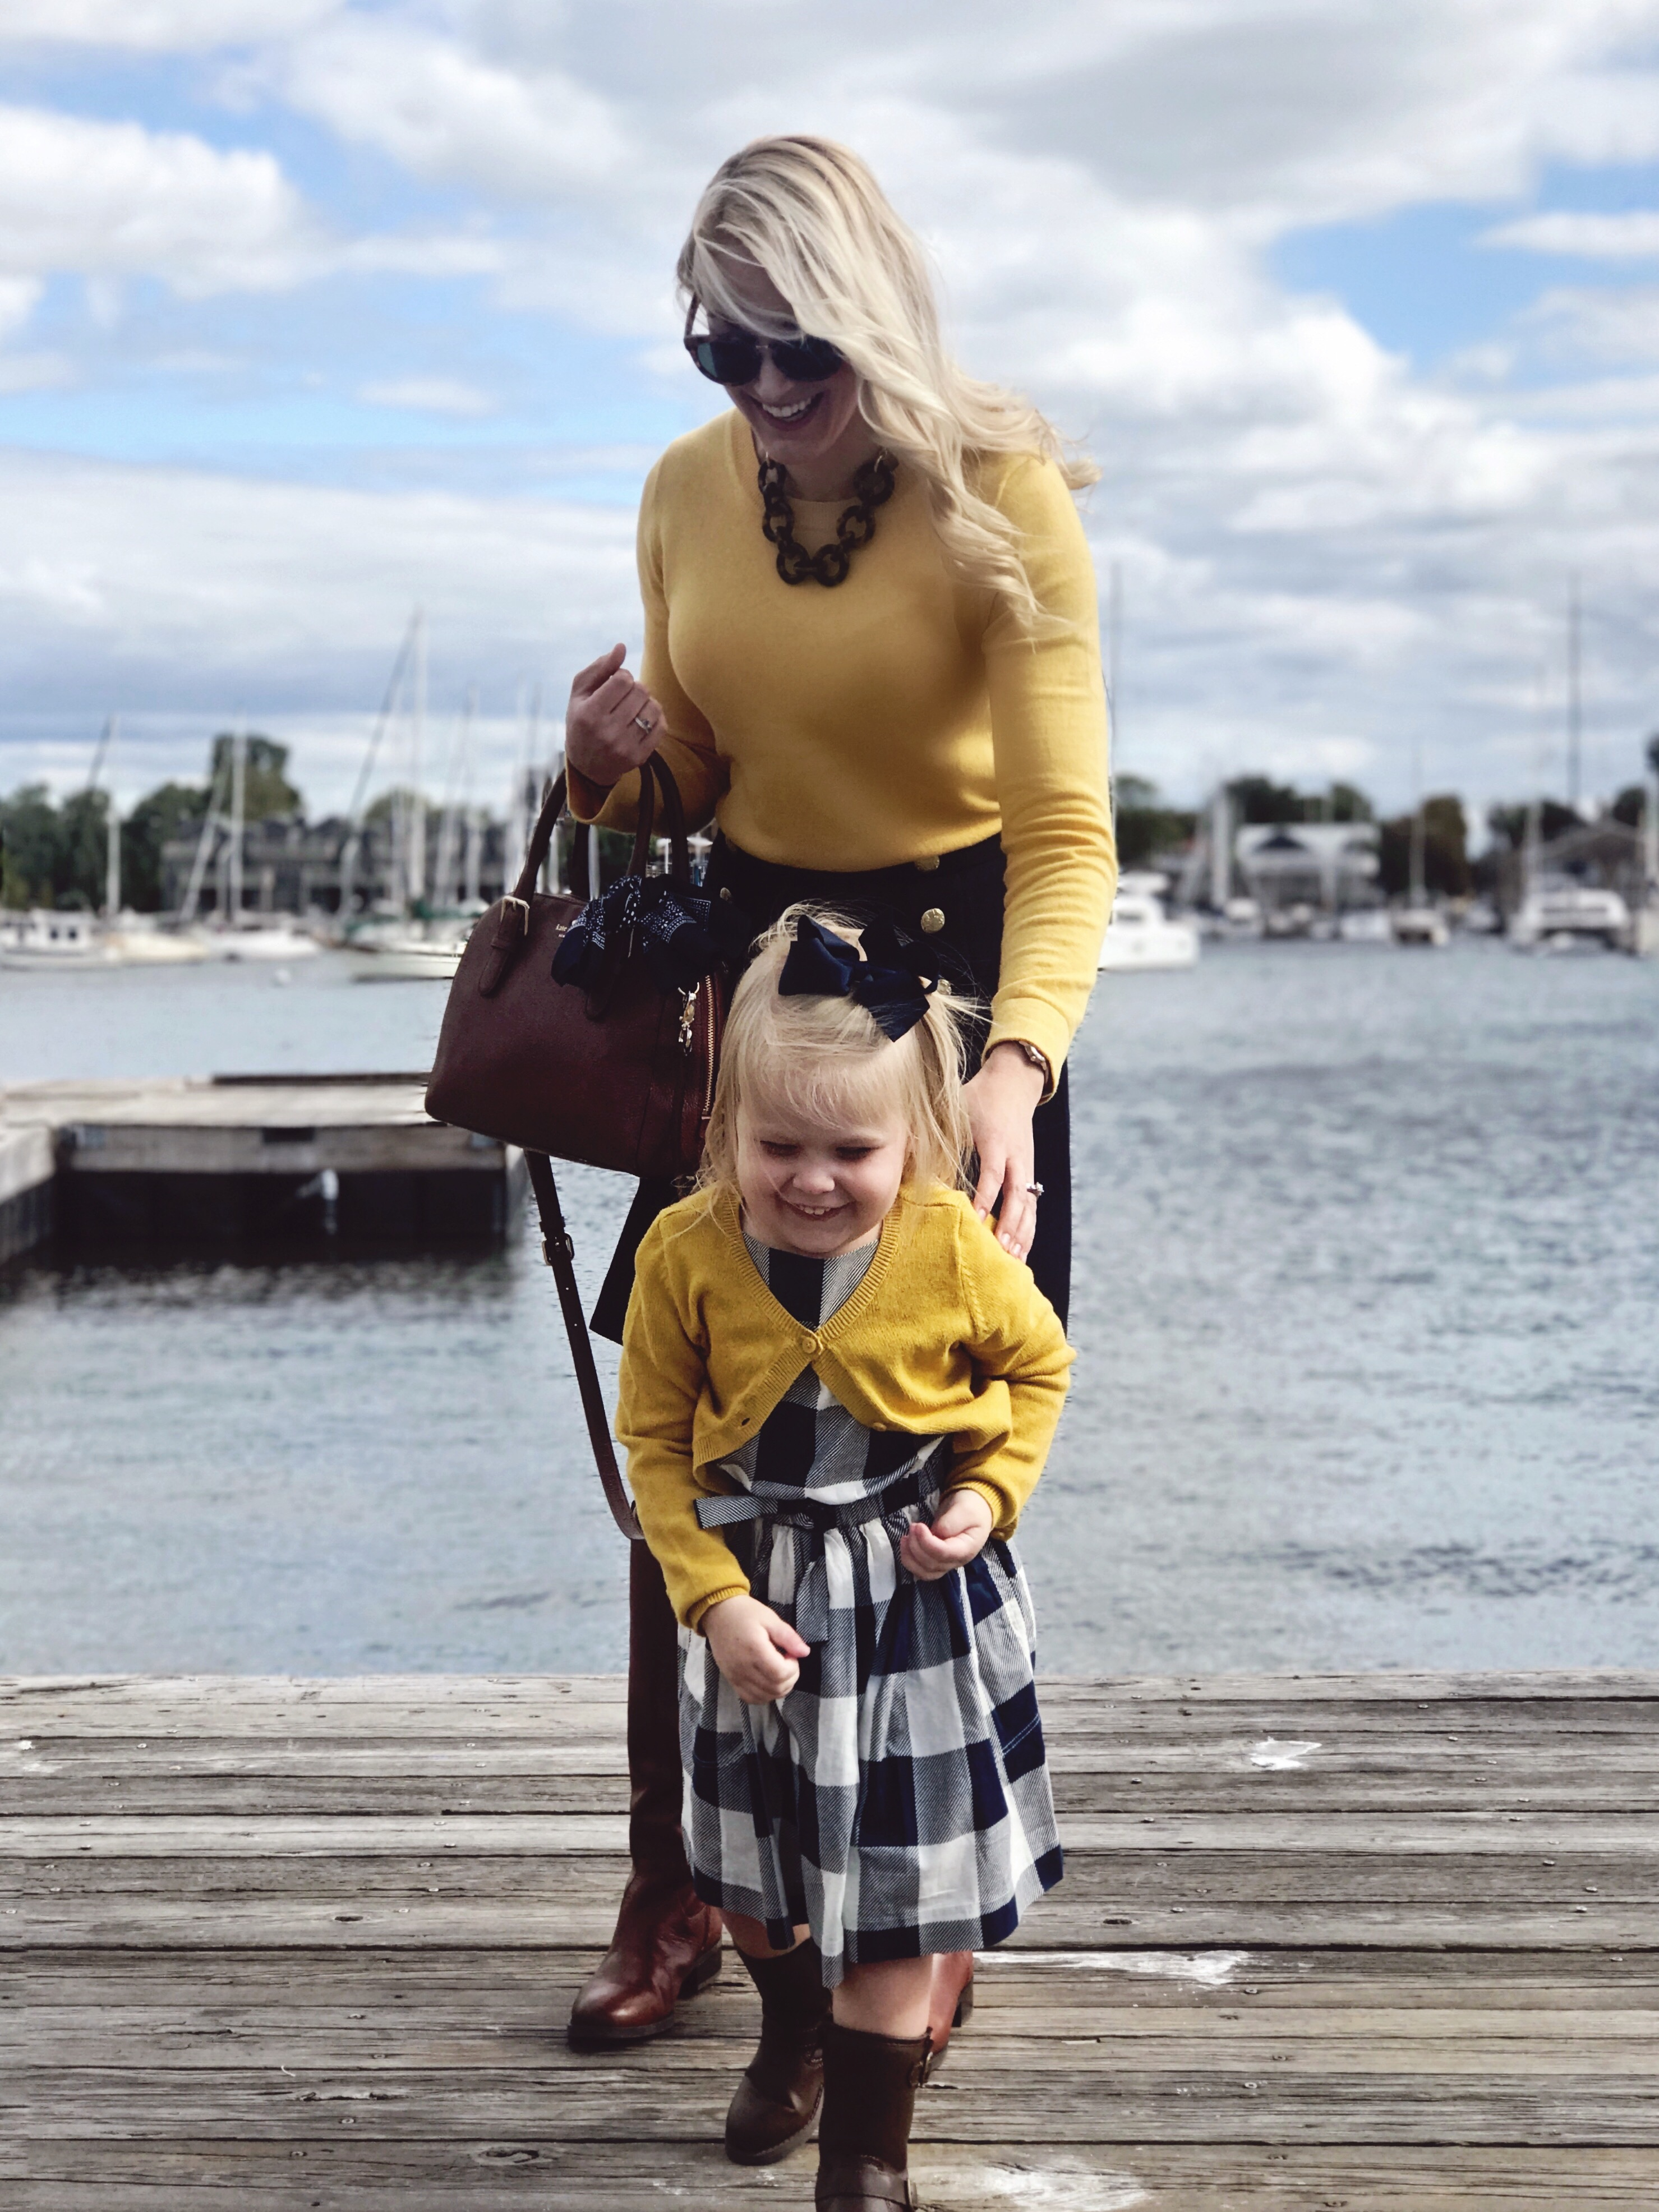 The best places to shop to find mommy and me outfits and looks. How I find my mommy and me outfits.